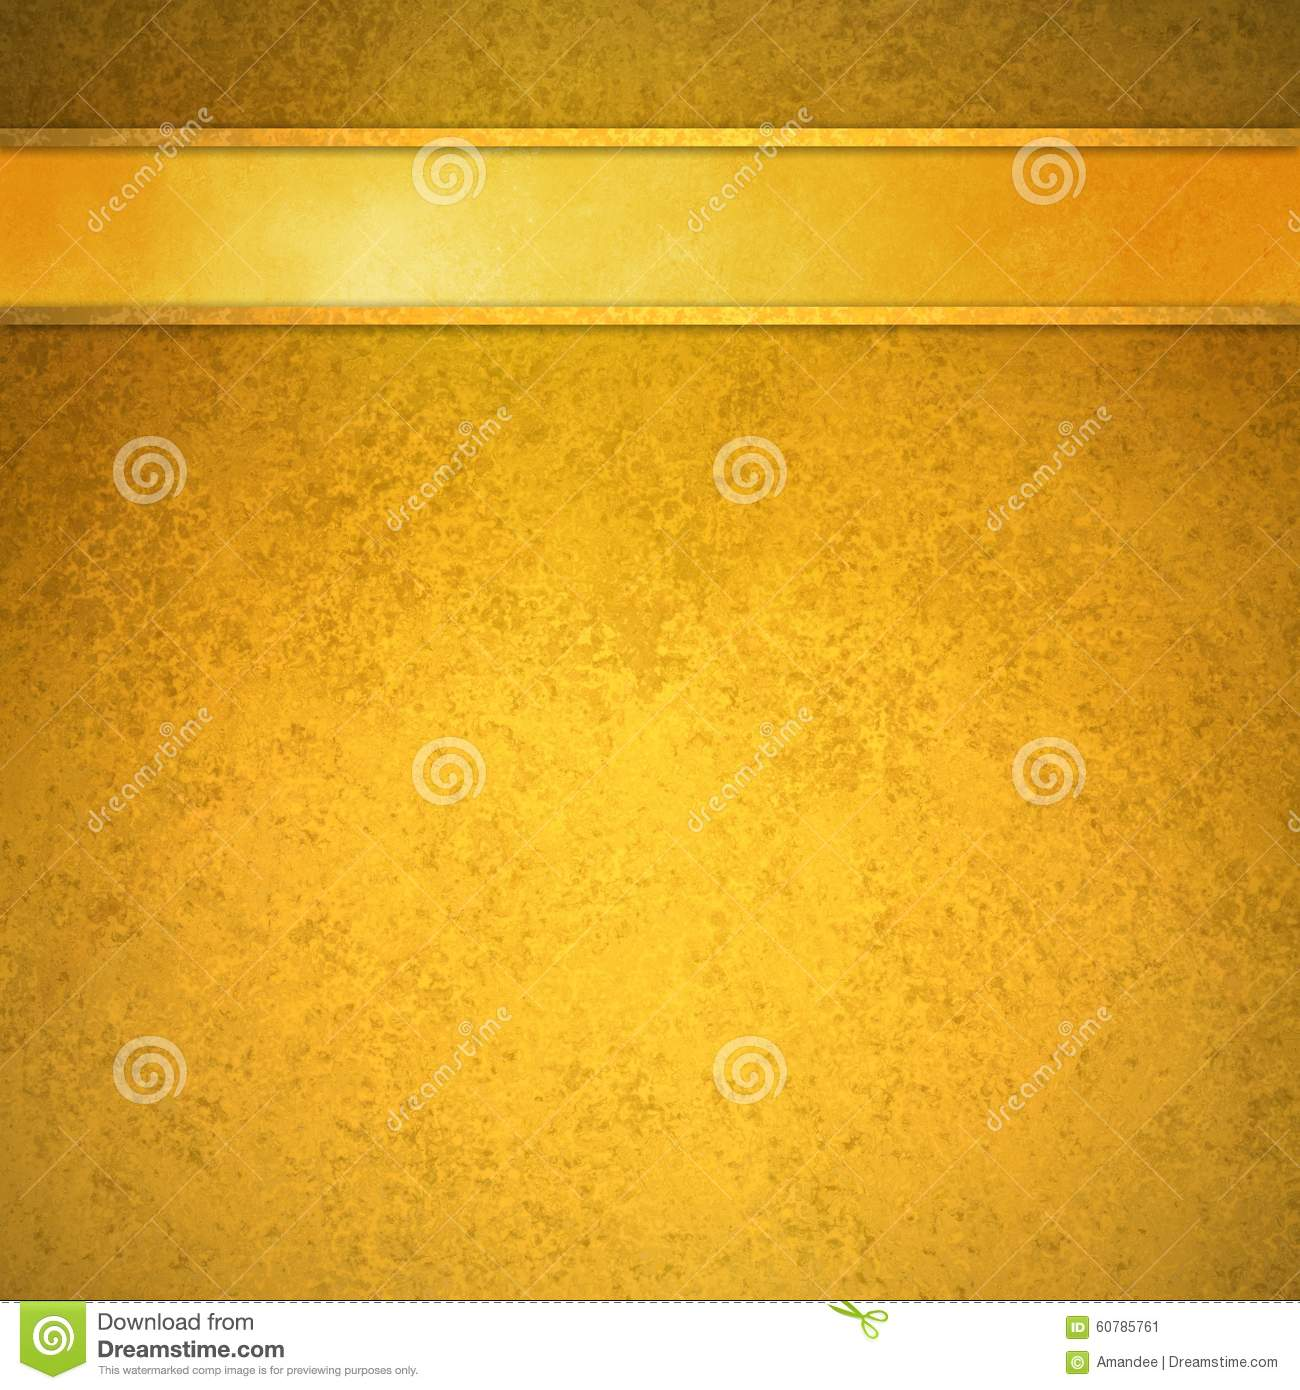 Background image header - Gold Background With Gold Ribbon And Trim Header